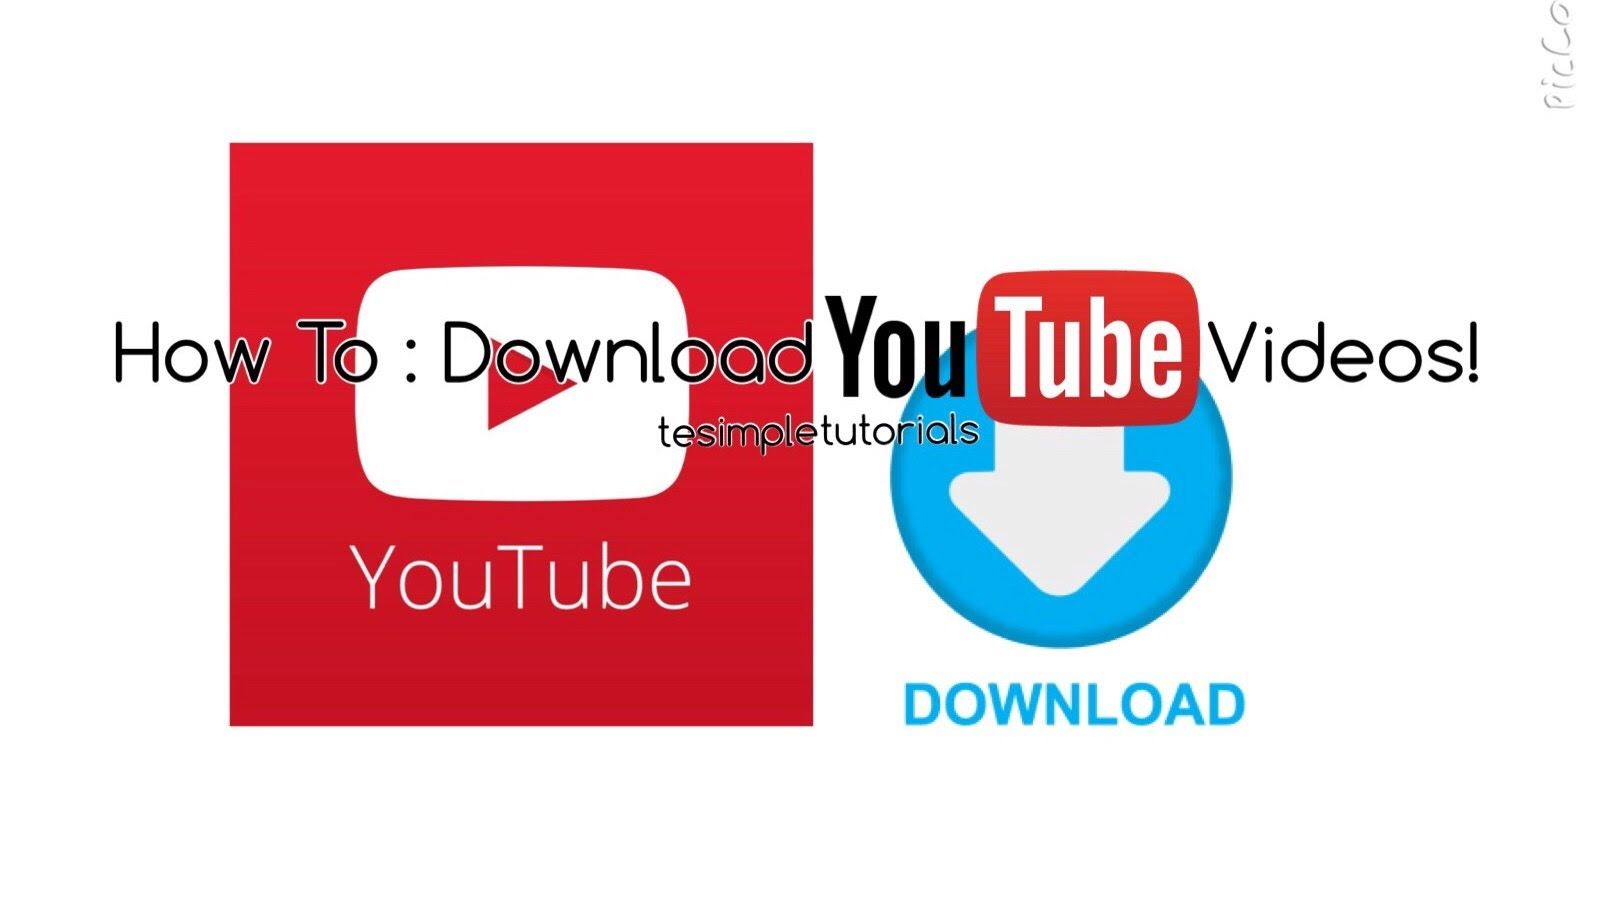 How To Download YouTube Videos onto your iPad or iPhone